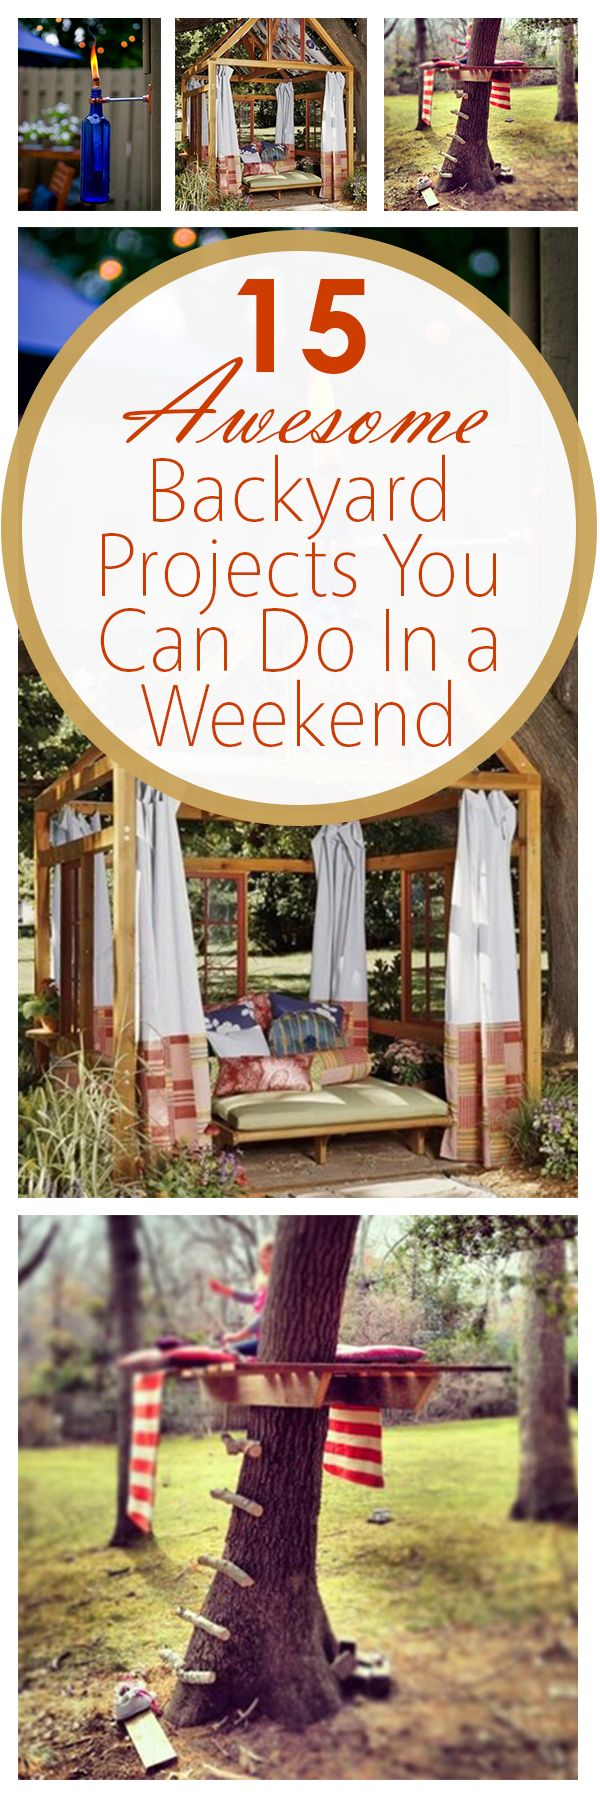 15 Awesome Backyard Projects You Can Do In a Weekend